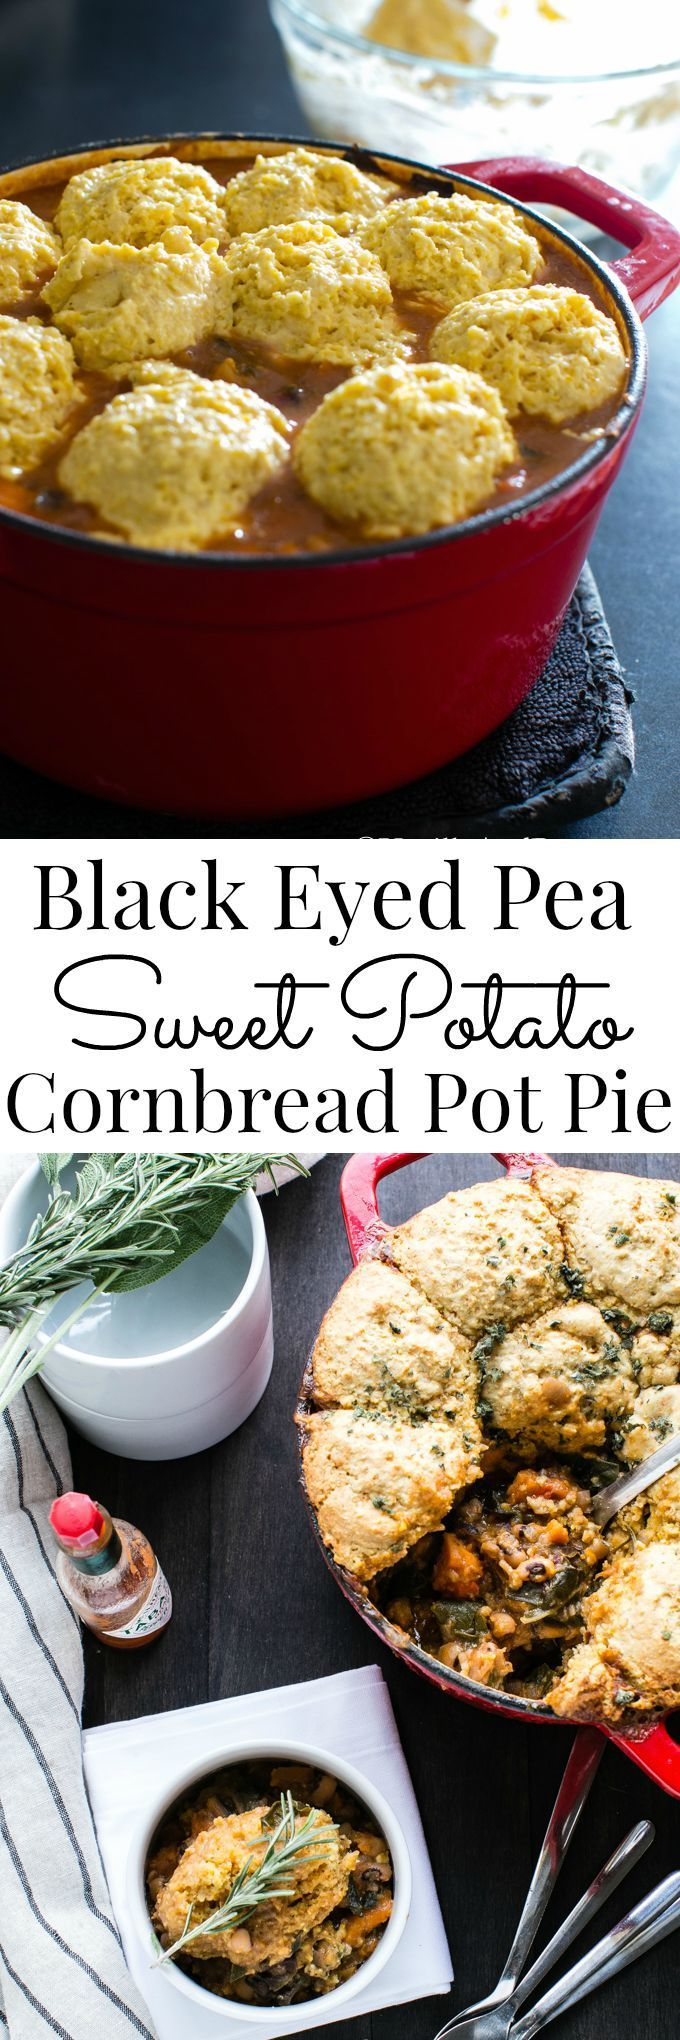 A comforting and hearty vegetarian one pot meal black eyed pea a comforting and hearty vegetarian one pot meal black eyed pea sweet potato cornbread forumfinder Choice Image